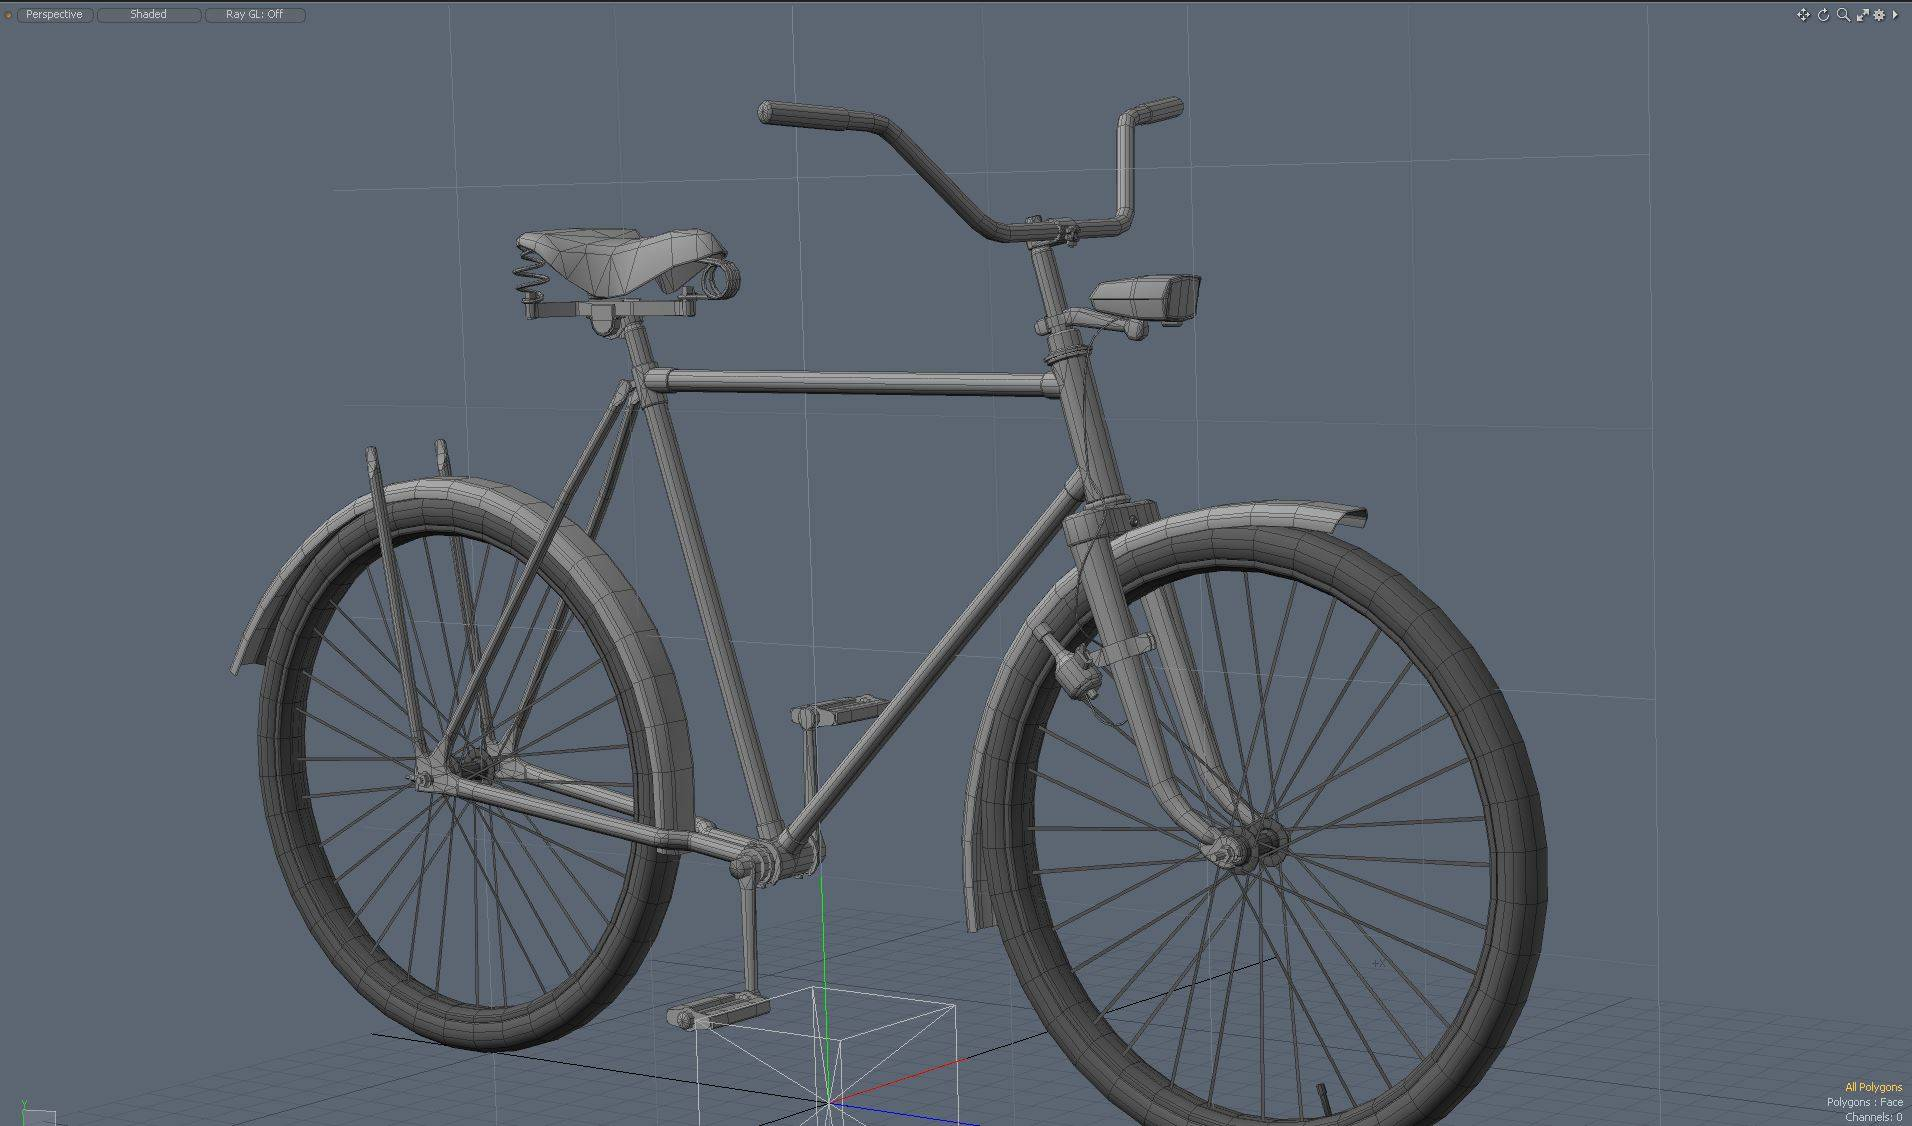 dayz-early-bicycle-model-w-i-p-1